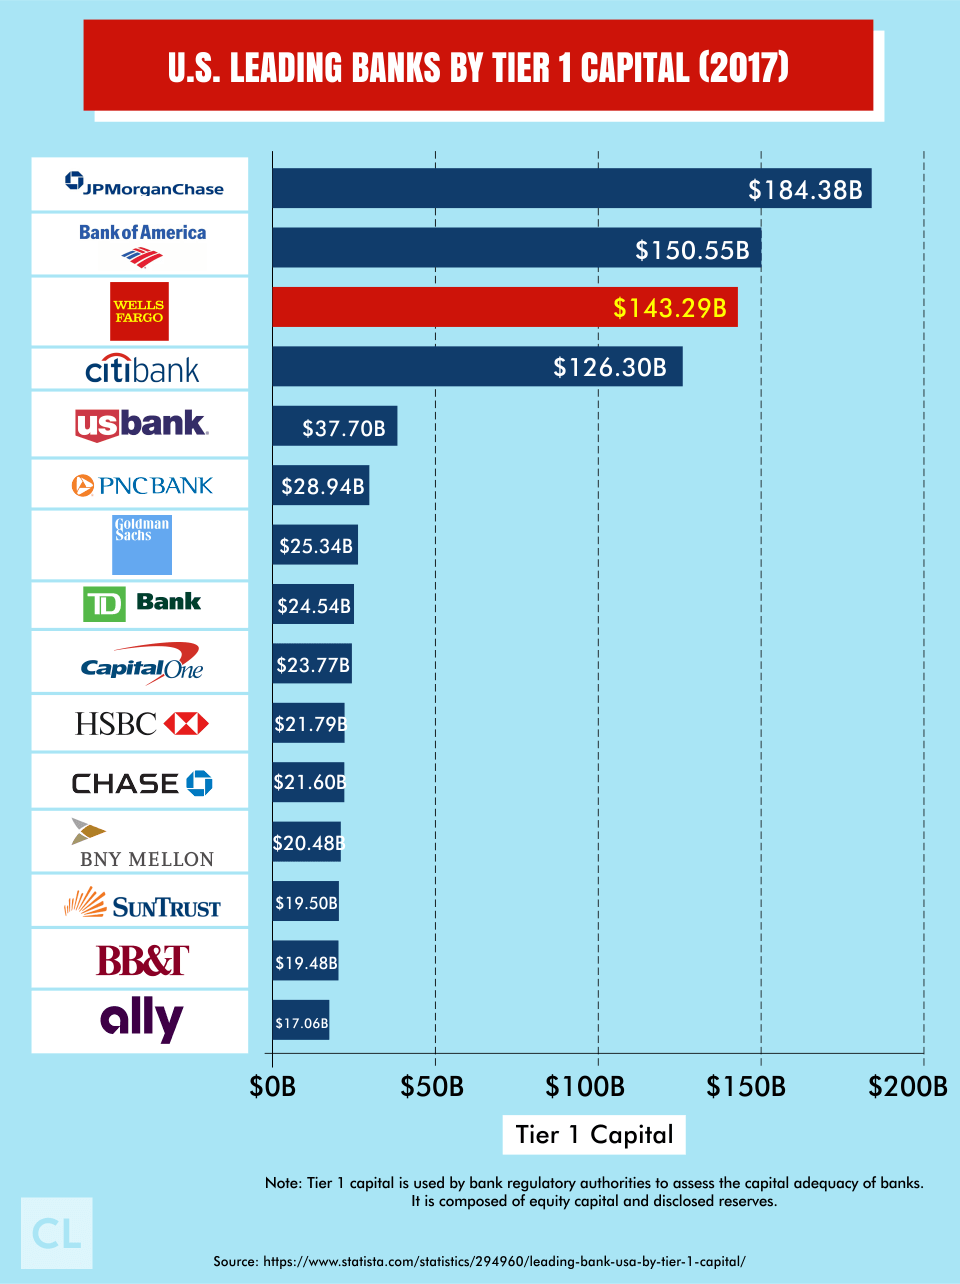 U.S. Leading Banks By Tier 1 Capital 2017